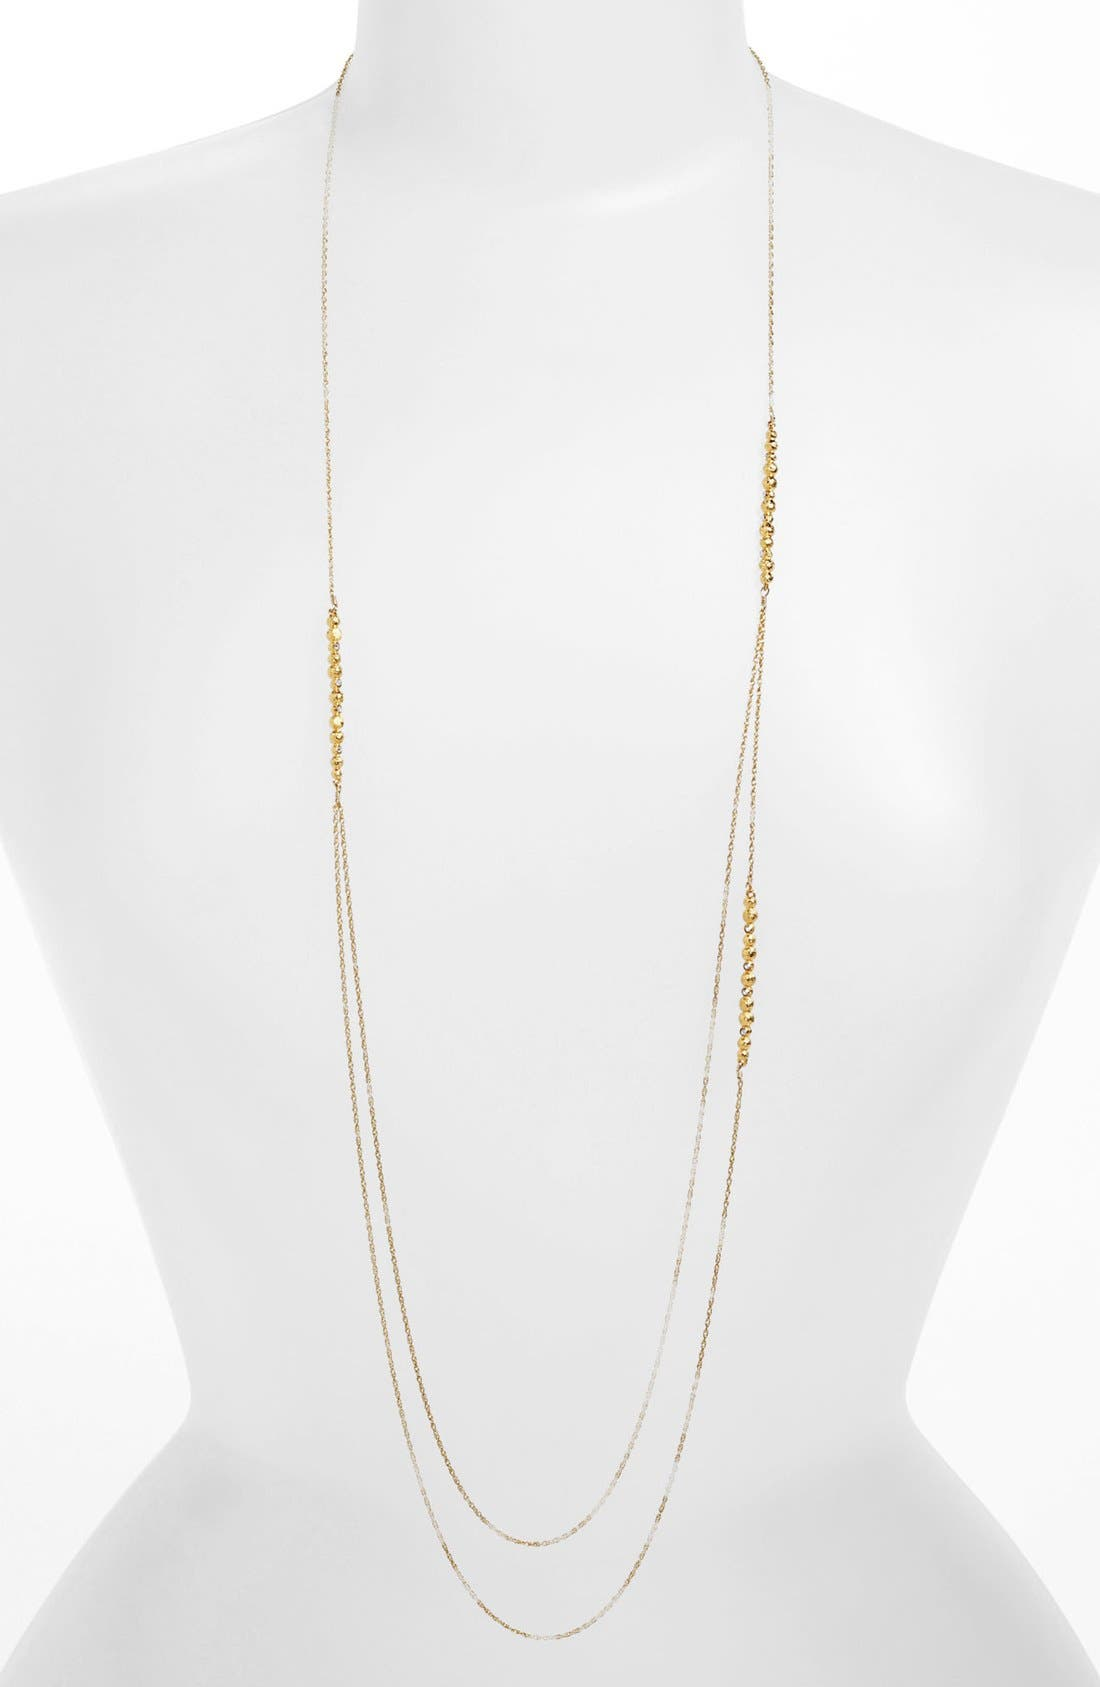 Main Image - Alexis Bittar 'Elements - Cordova' Long Multistrand Necklace